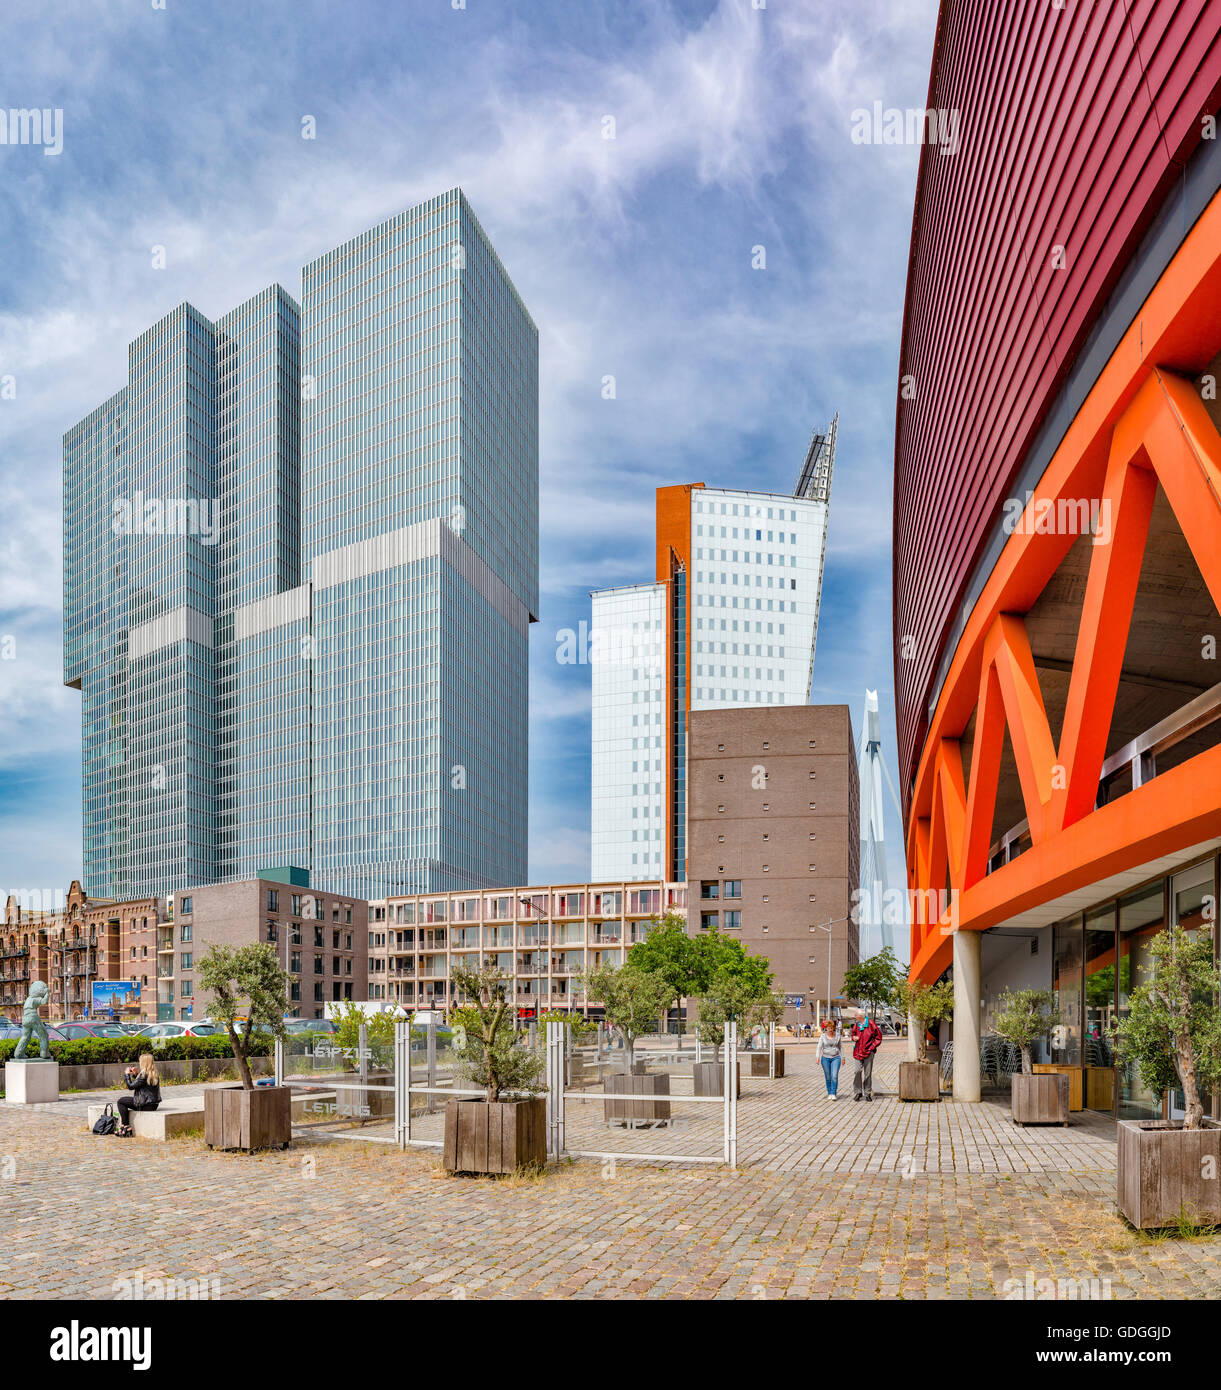 Rotterdam,Modern high-rise office buildings - Stock Image